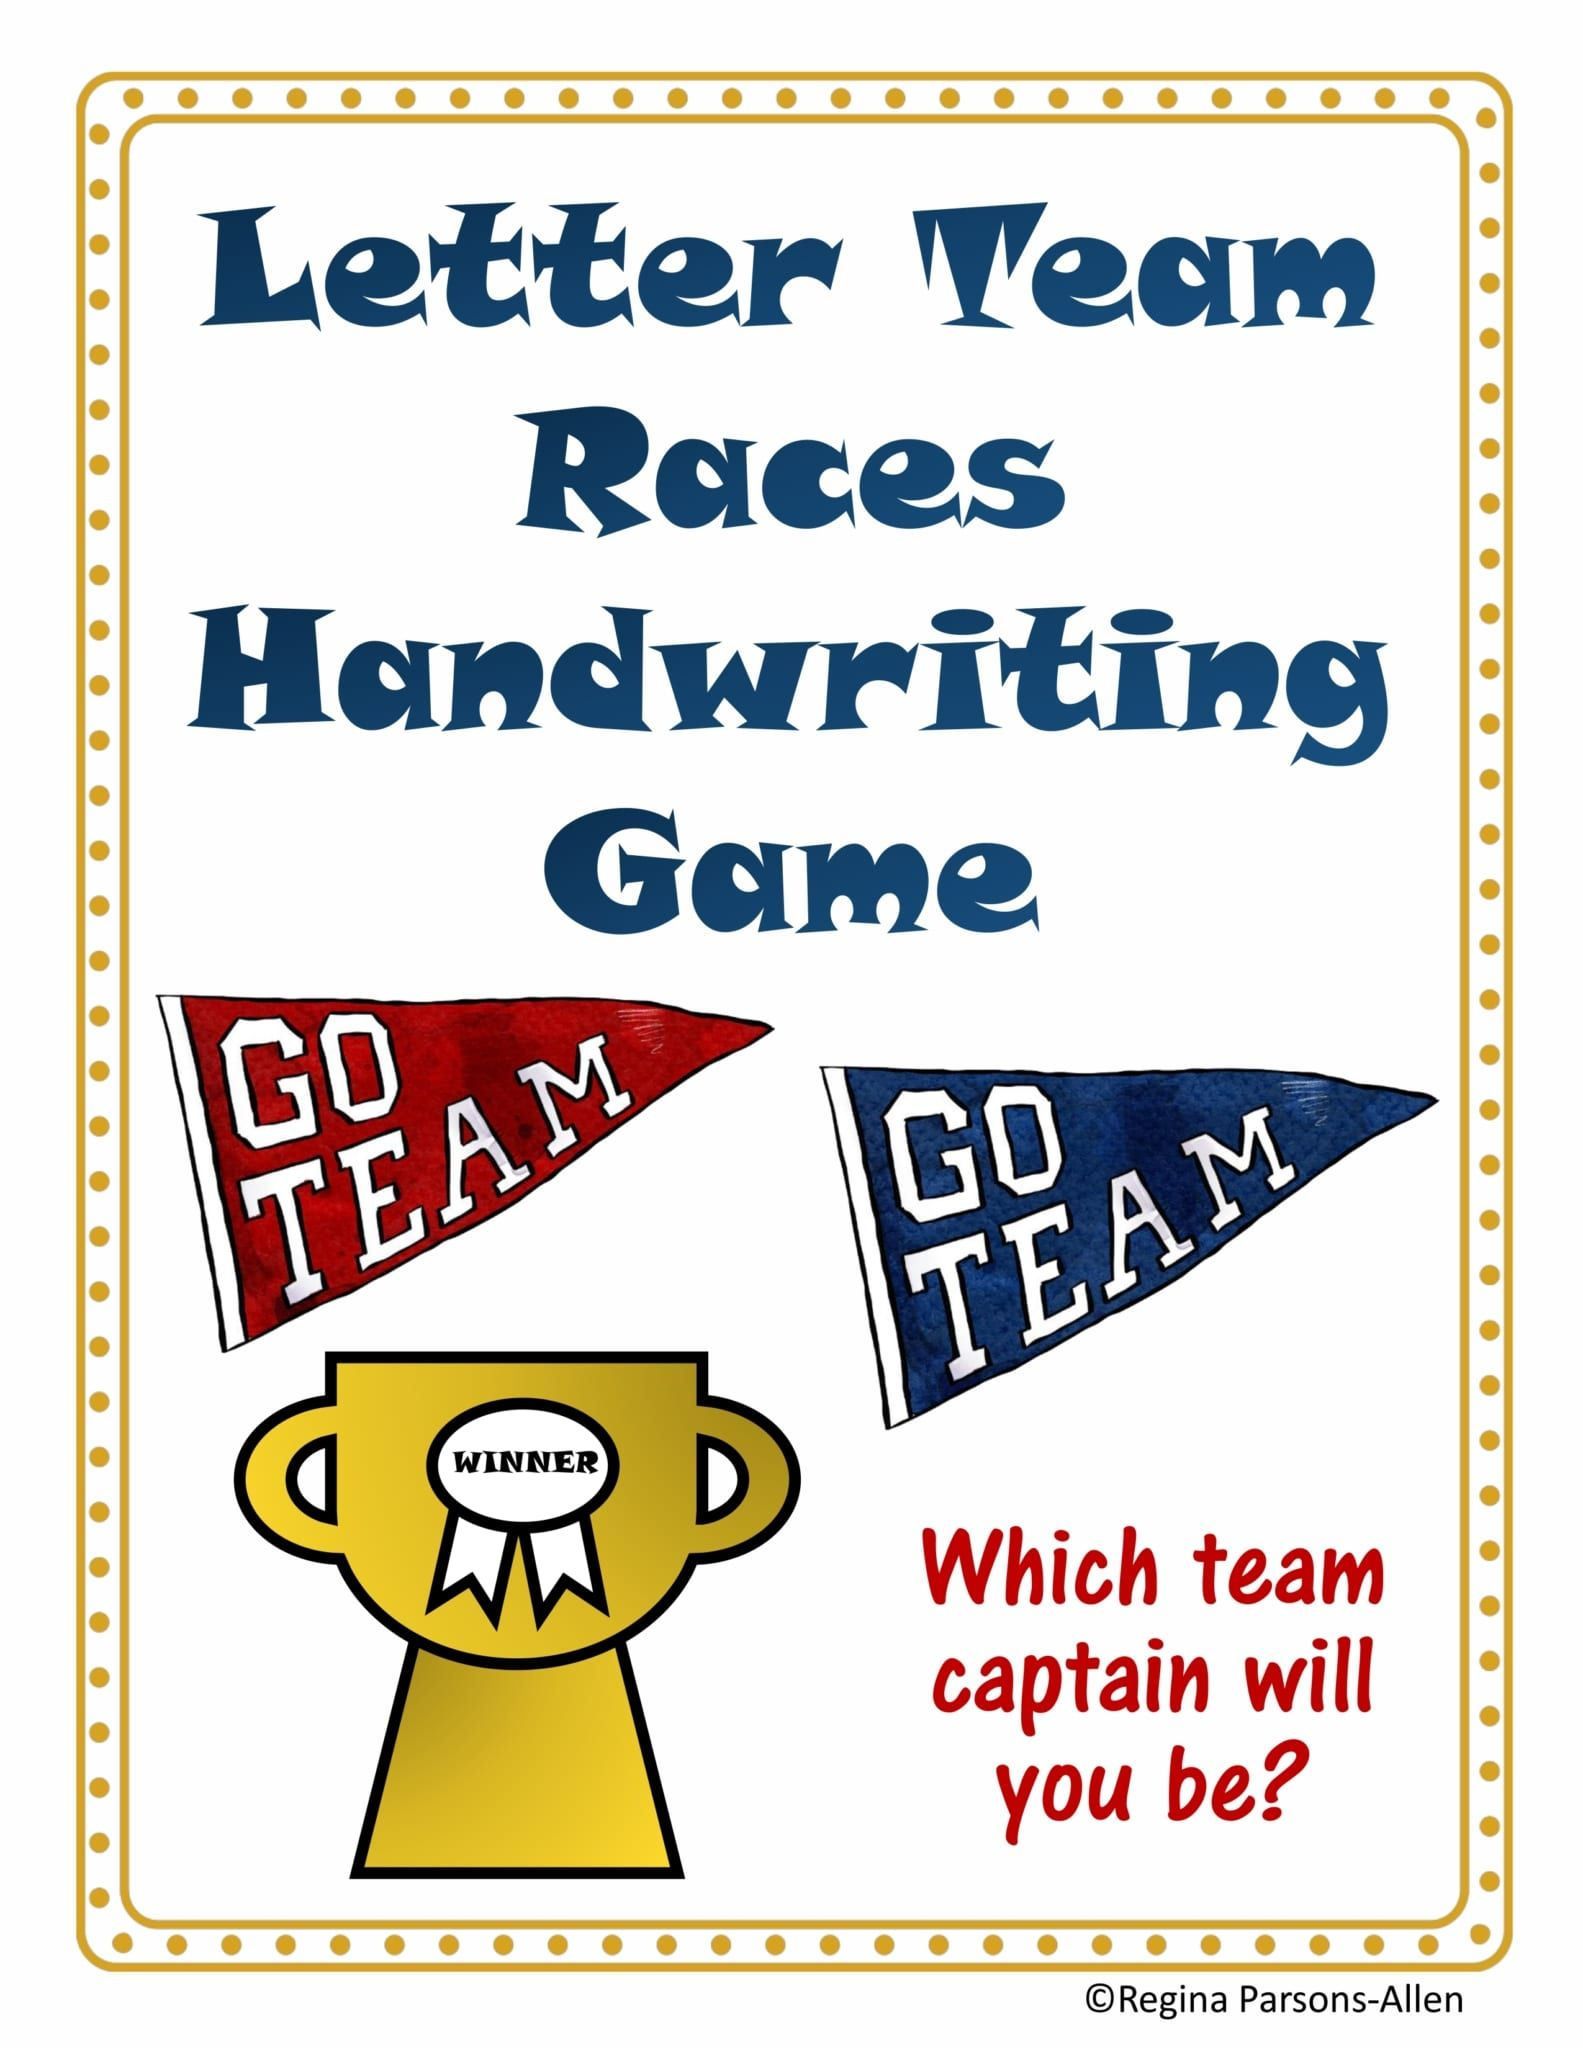 Letter Races Handwriting Game